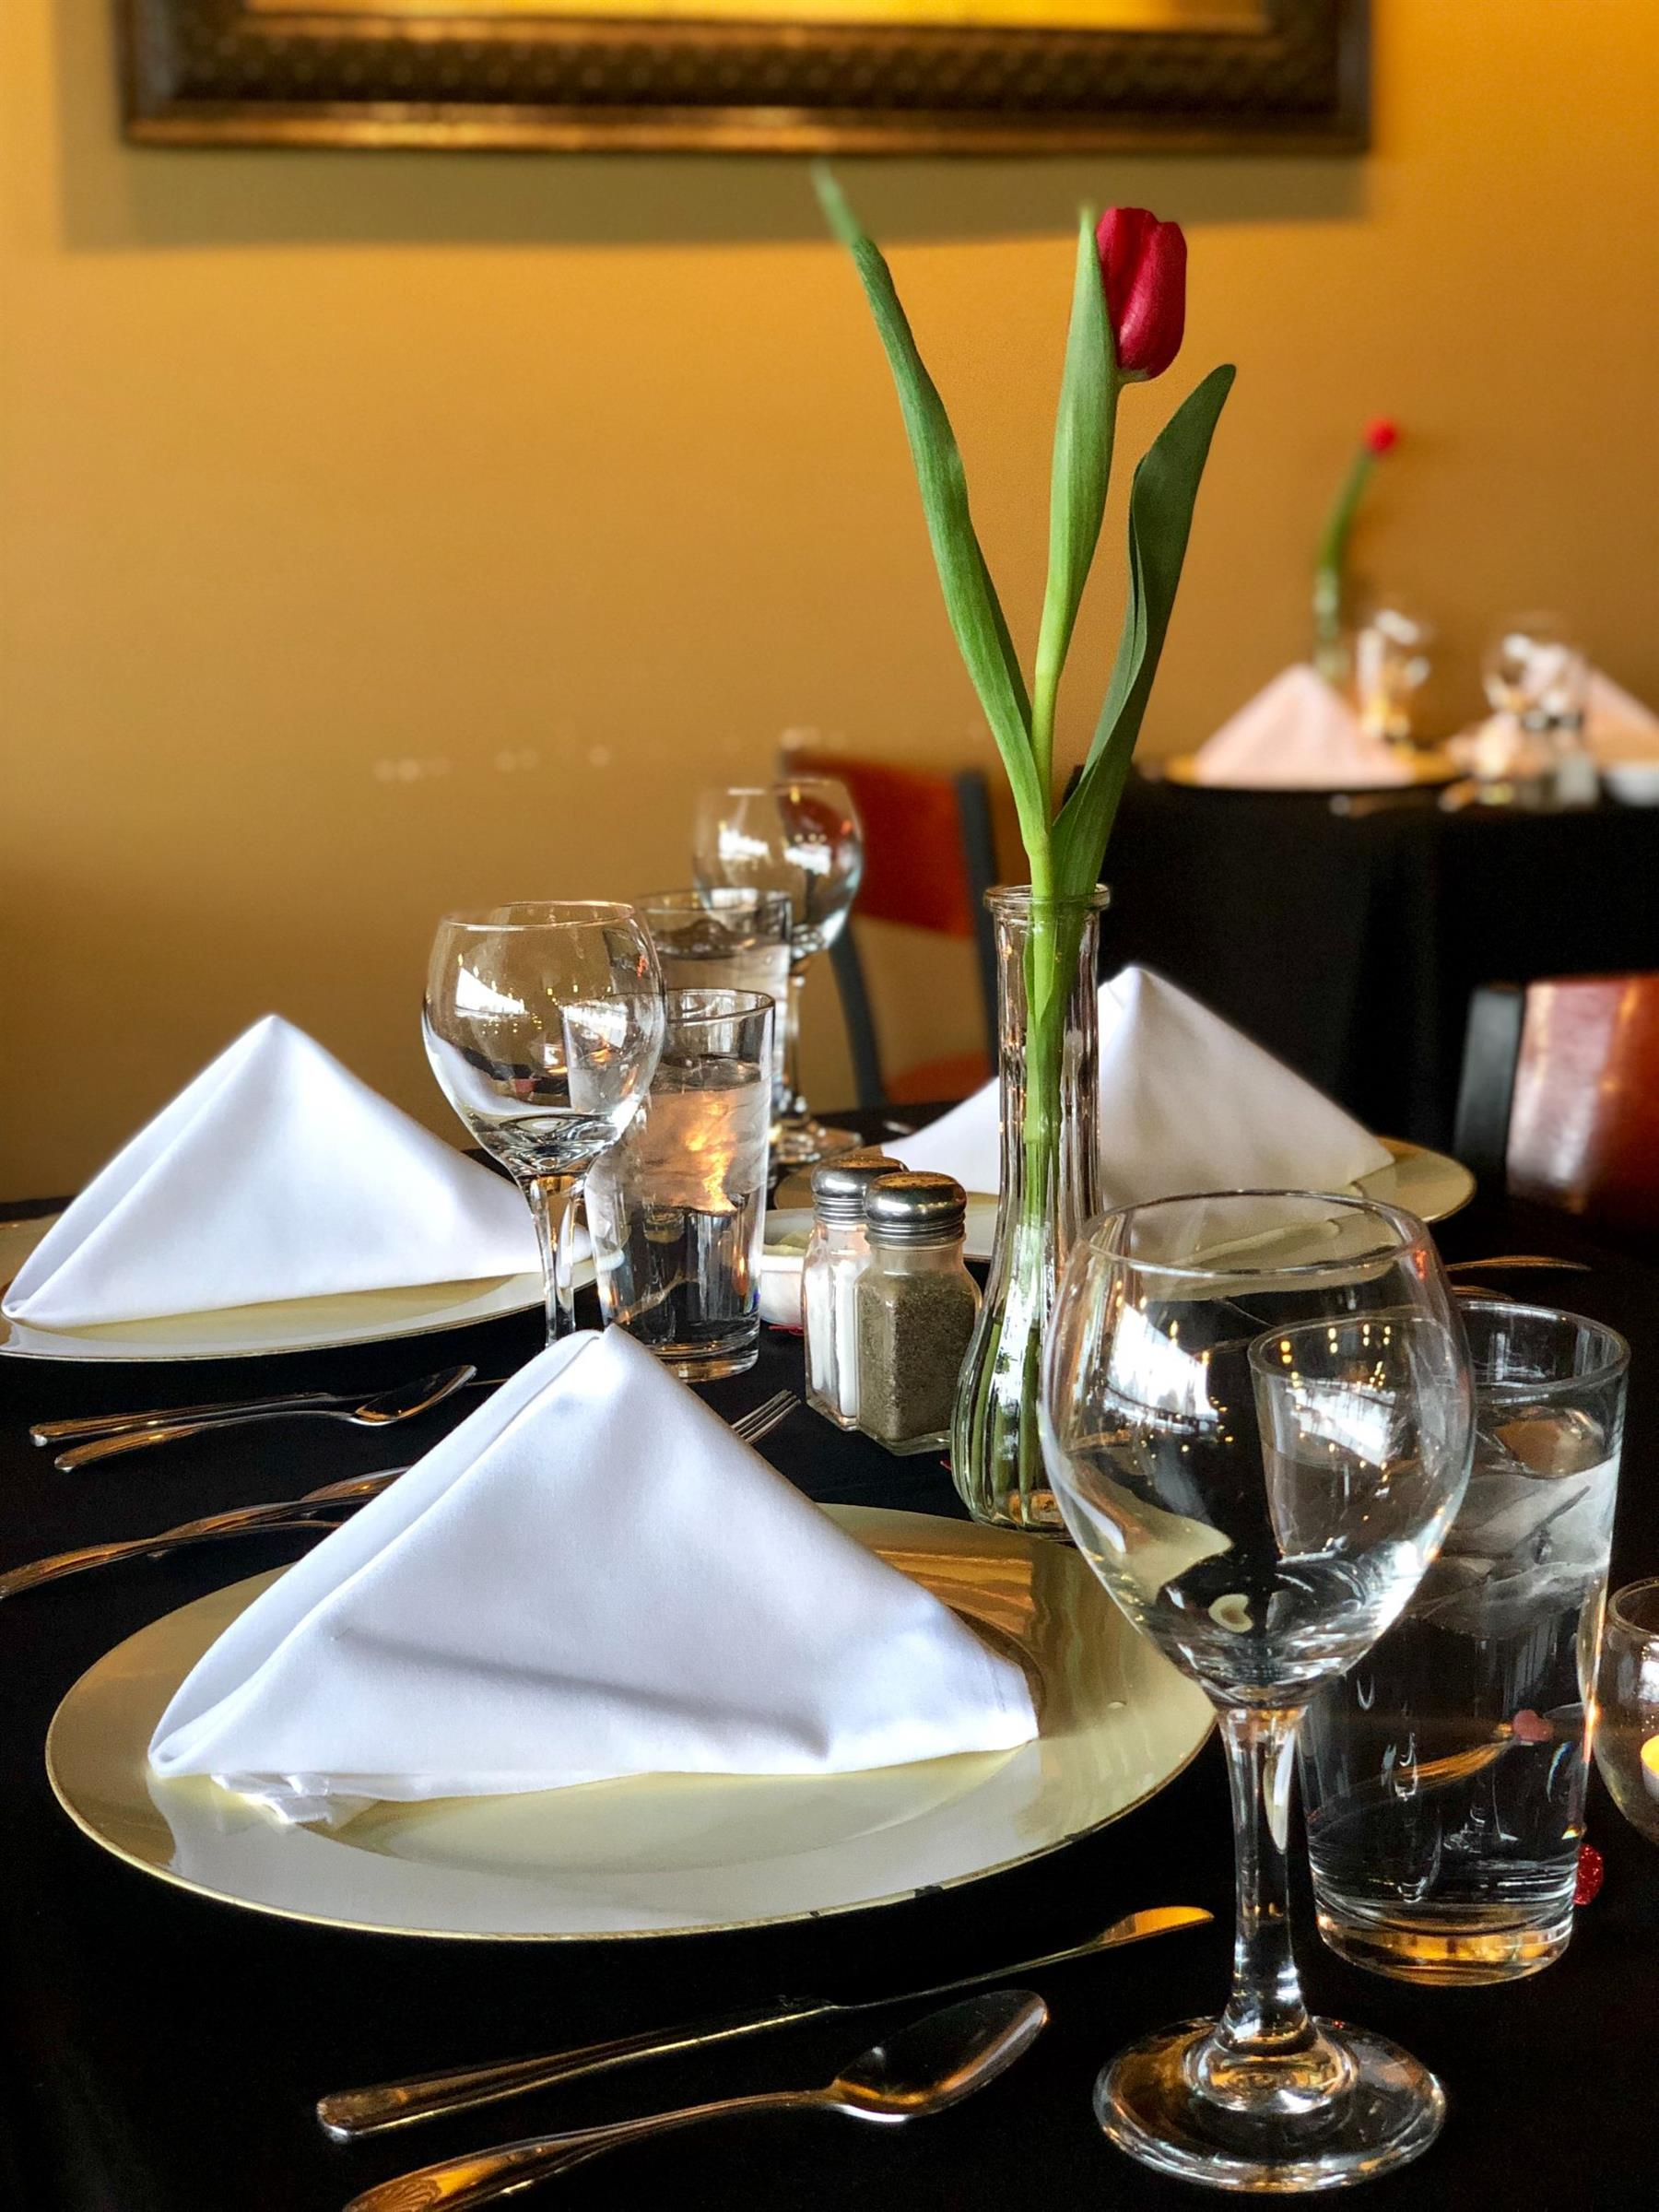 table set with plates, cloth napkins, silverware and glassware